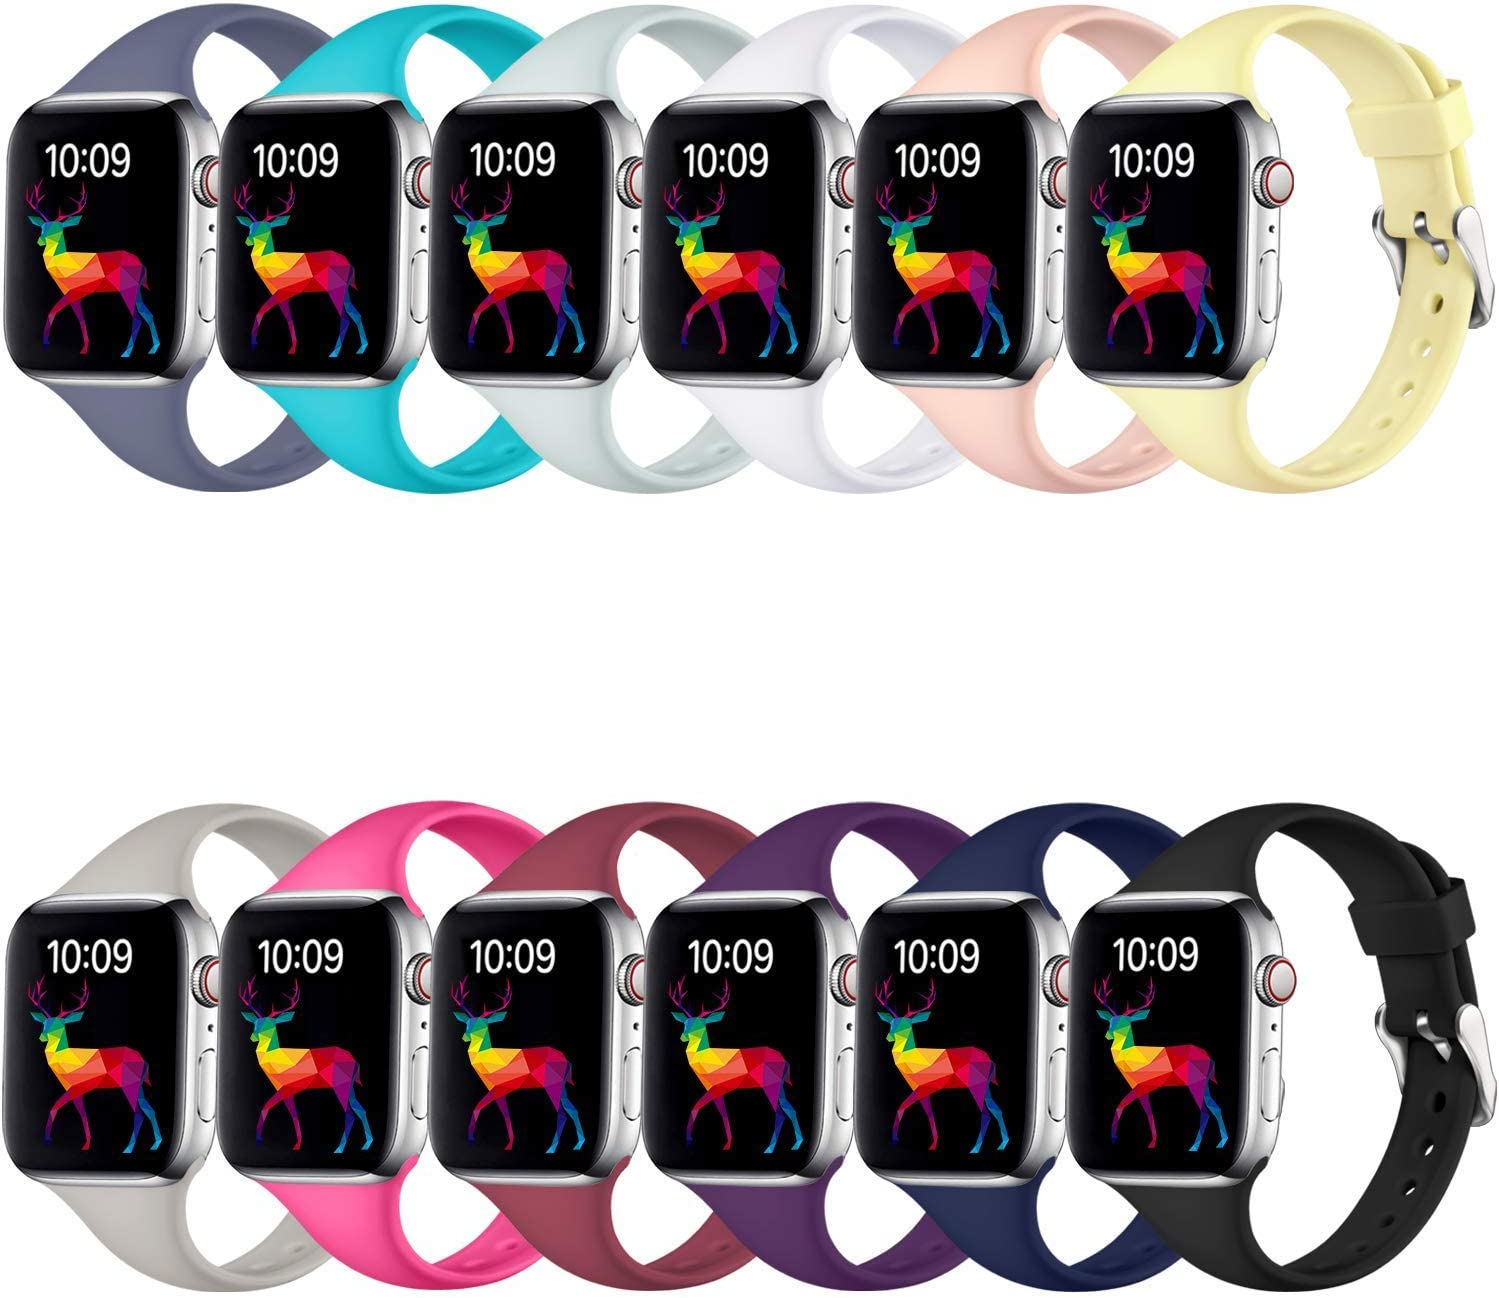 Laffav Slim Band Compatible with Apple Watch 40mm 38mm for Women Men, Soft Silicone Narrow Thin Sport Replacement Strap for iWatch SE & Series 6 & Series 5 4 3 2 1 (12 Pack, 38mm/40mm M/L)